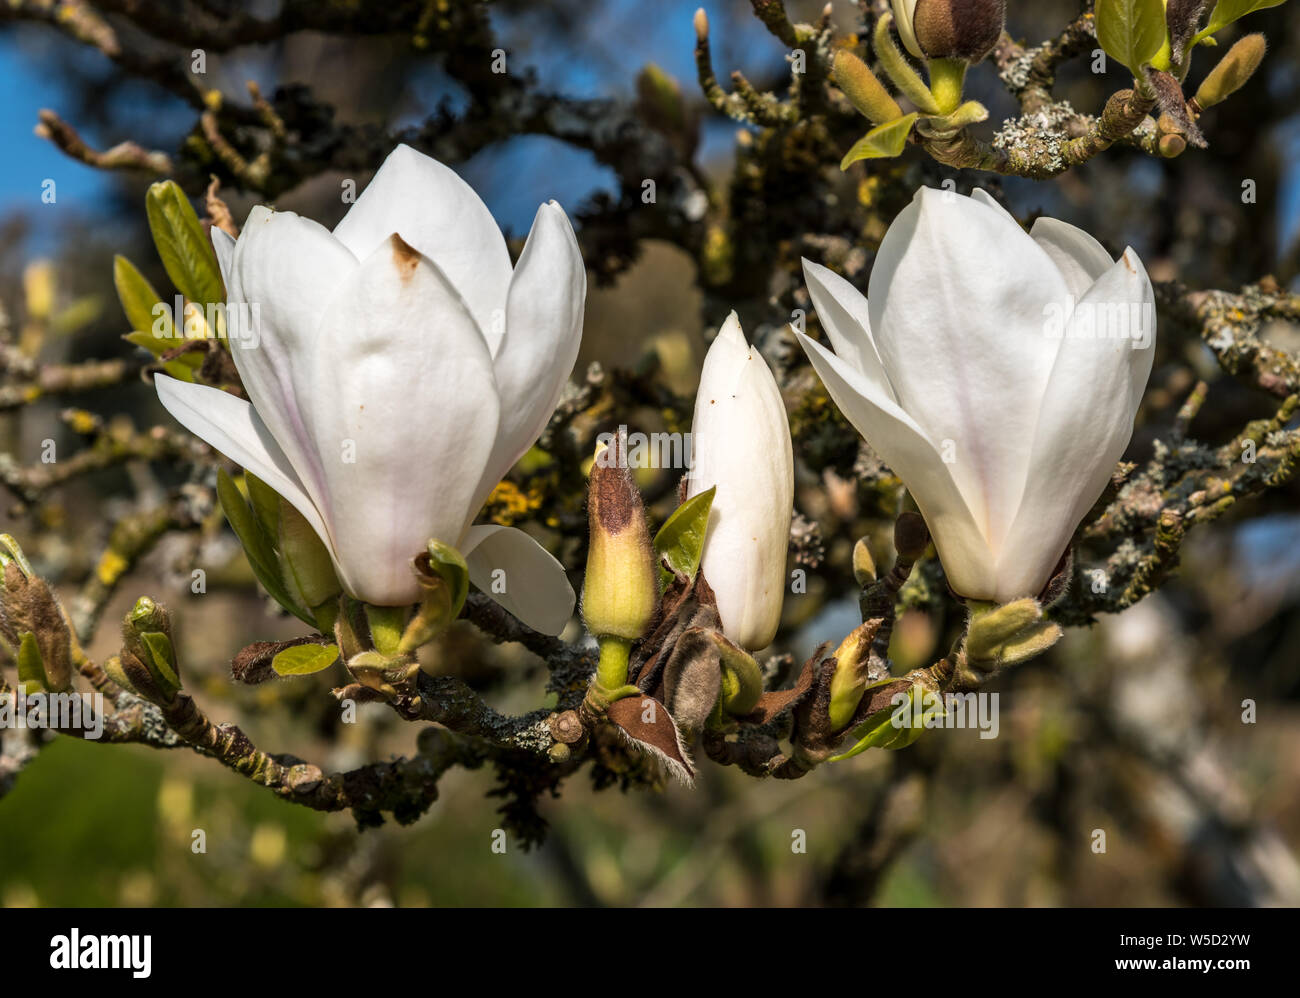 White Magnolia flowers on a sunny early Spring afternoon Stock Photo